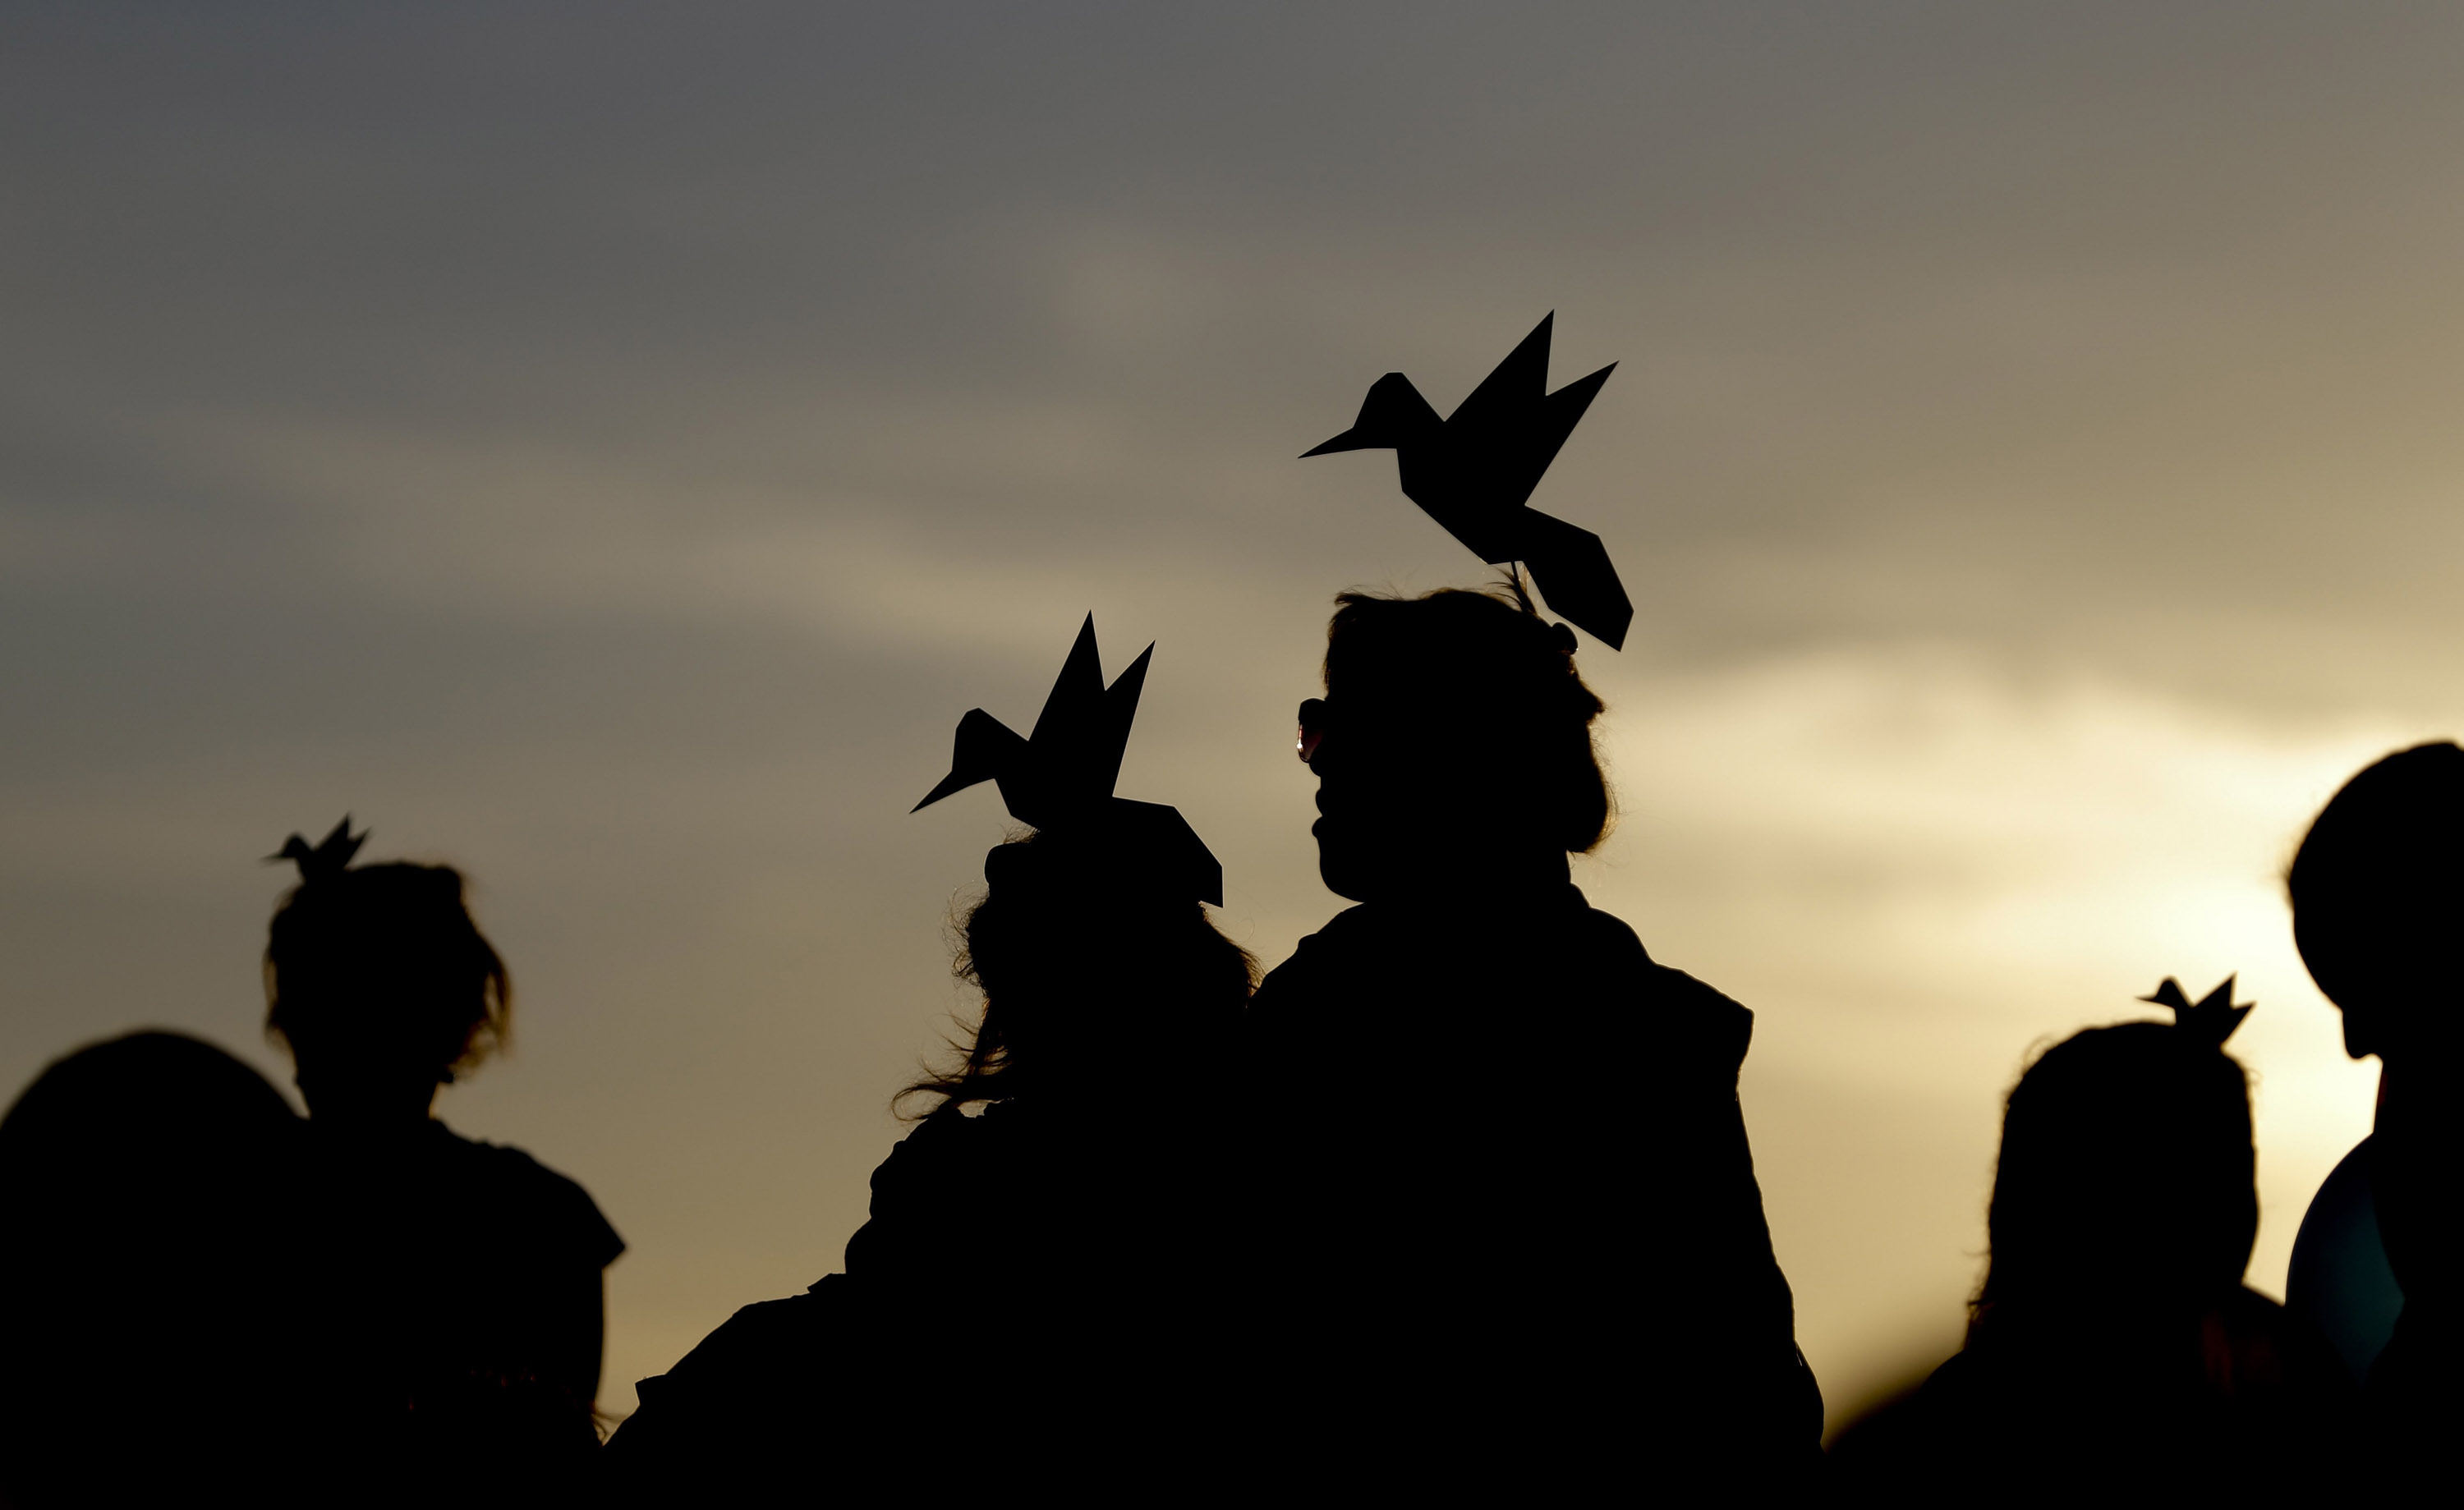 Supporters of presidential candidate for the ruling Broad Front party, Tabare Vazquez, wear paper birds on their heads, while attending his closing campaign rally in Montevideo, Uruguay on Oct. 23, 2014.